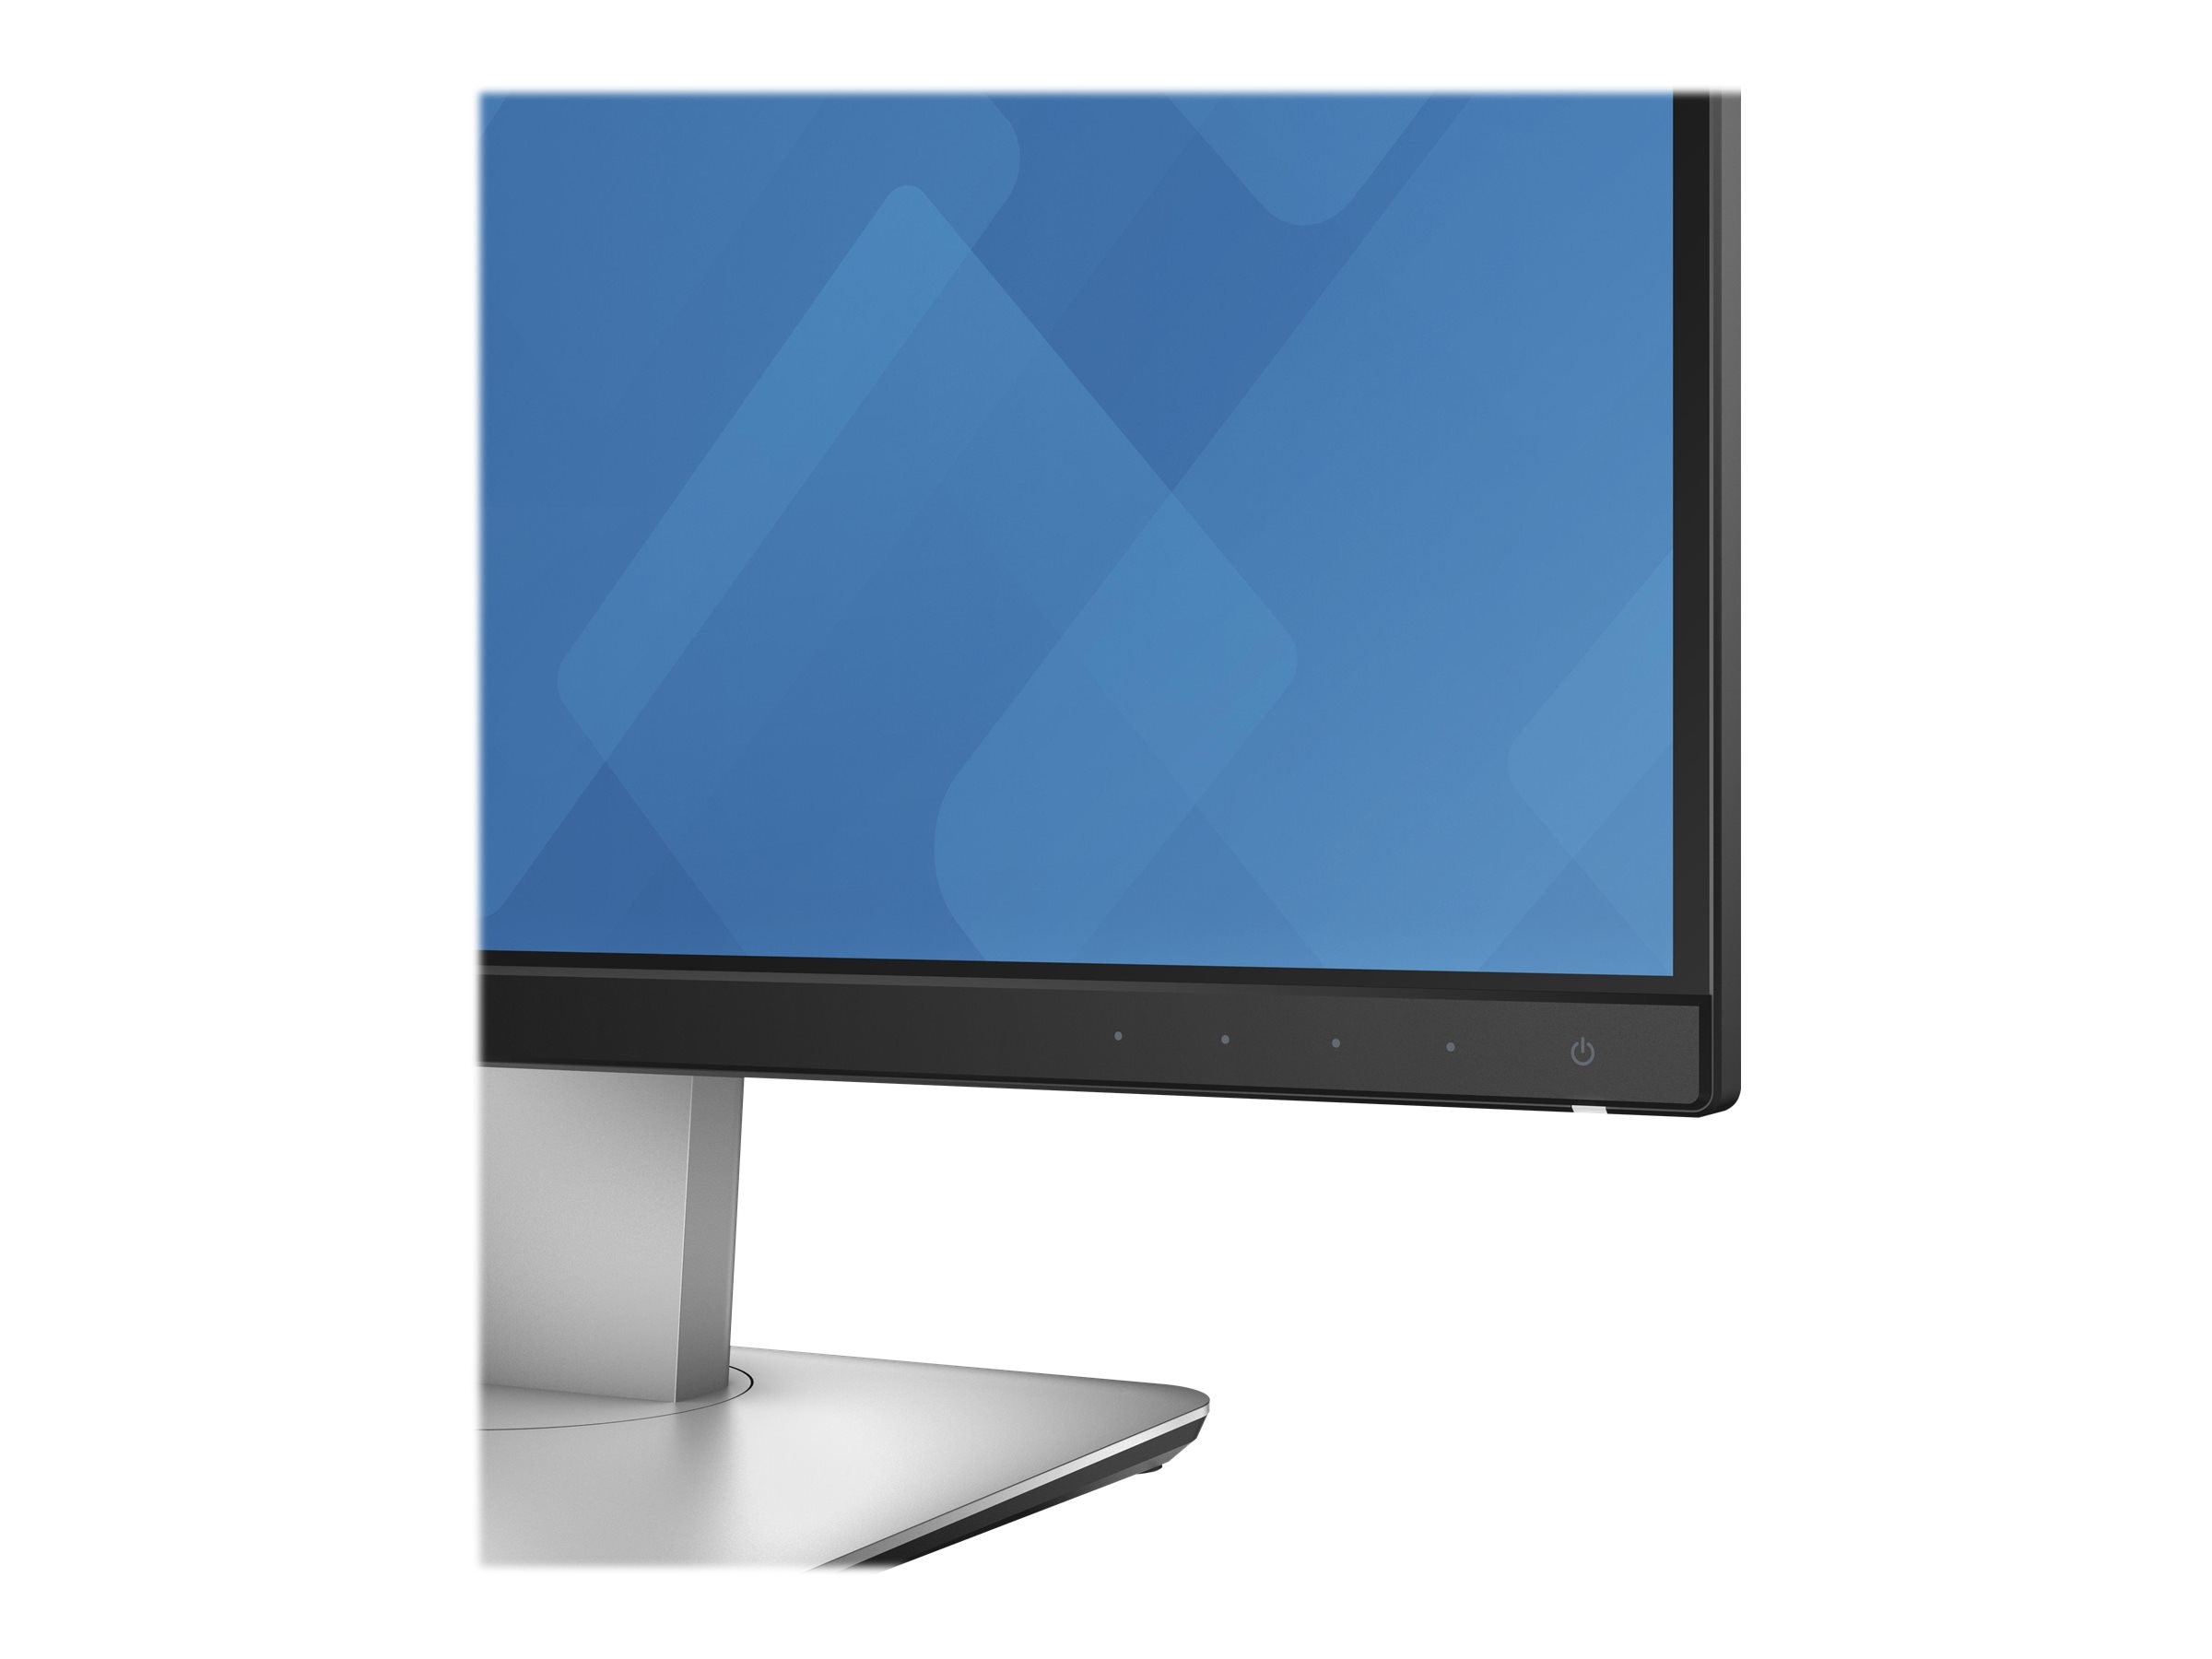 Dell 24.1 U2415 LED-LCD Monitor, Black, U2415